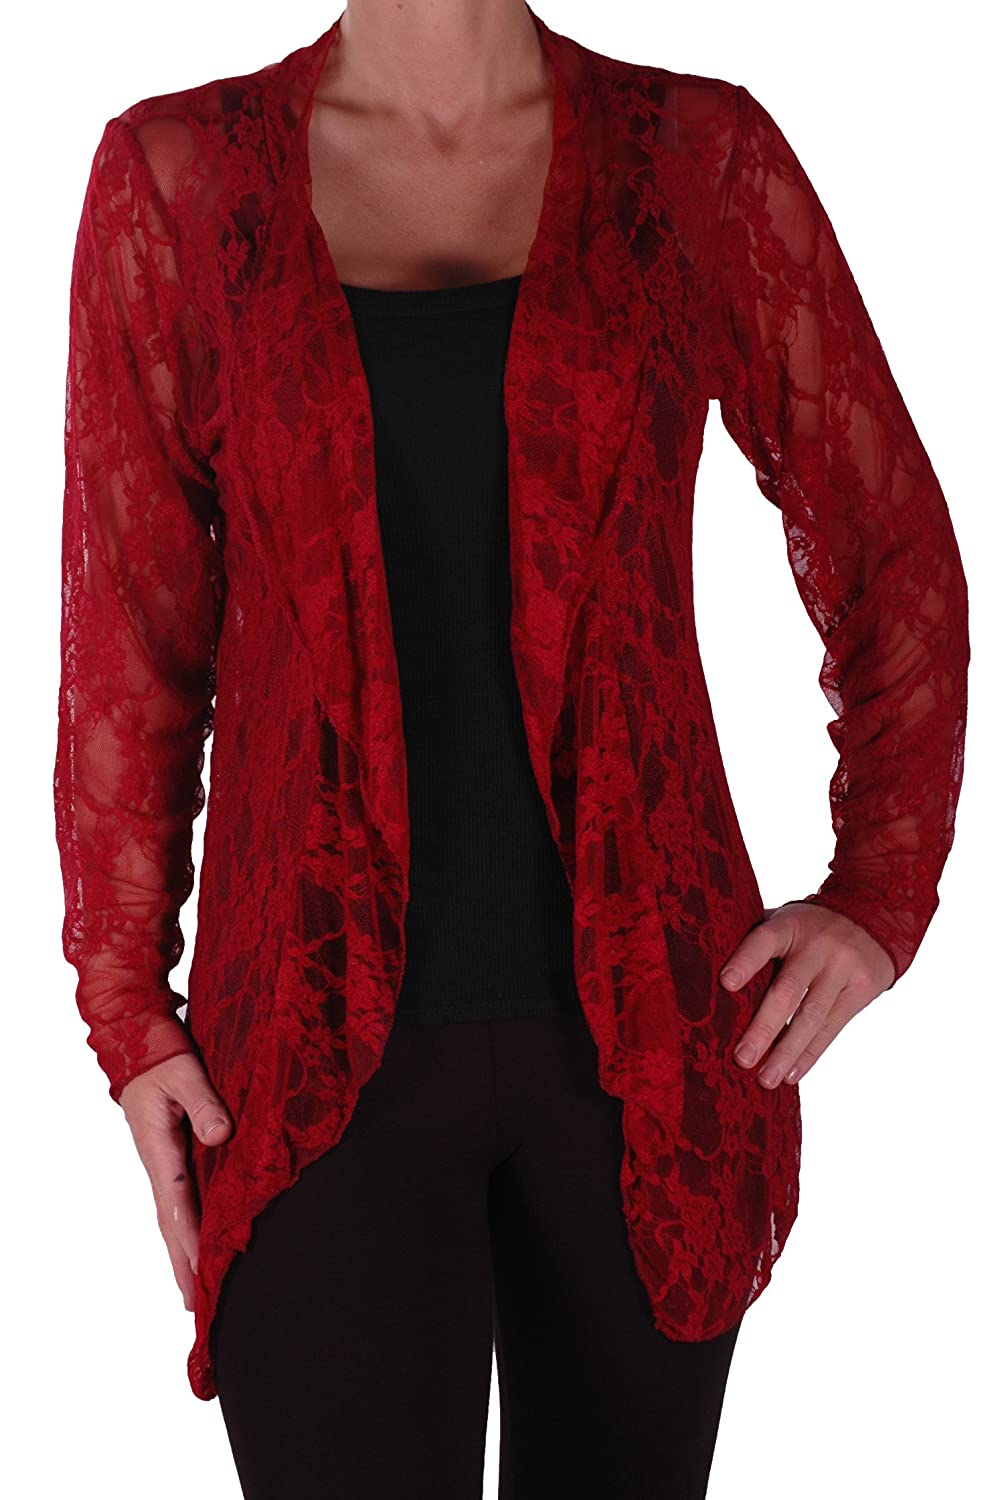 Eyecatch - Riya Womens Floral Lace Waterfall Cardigan Ladies Plus Size Open Cardi Sizes 14-28